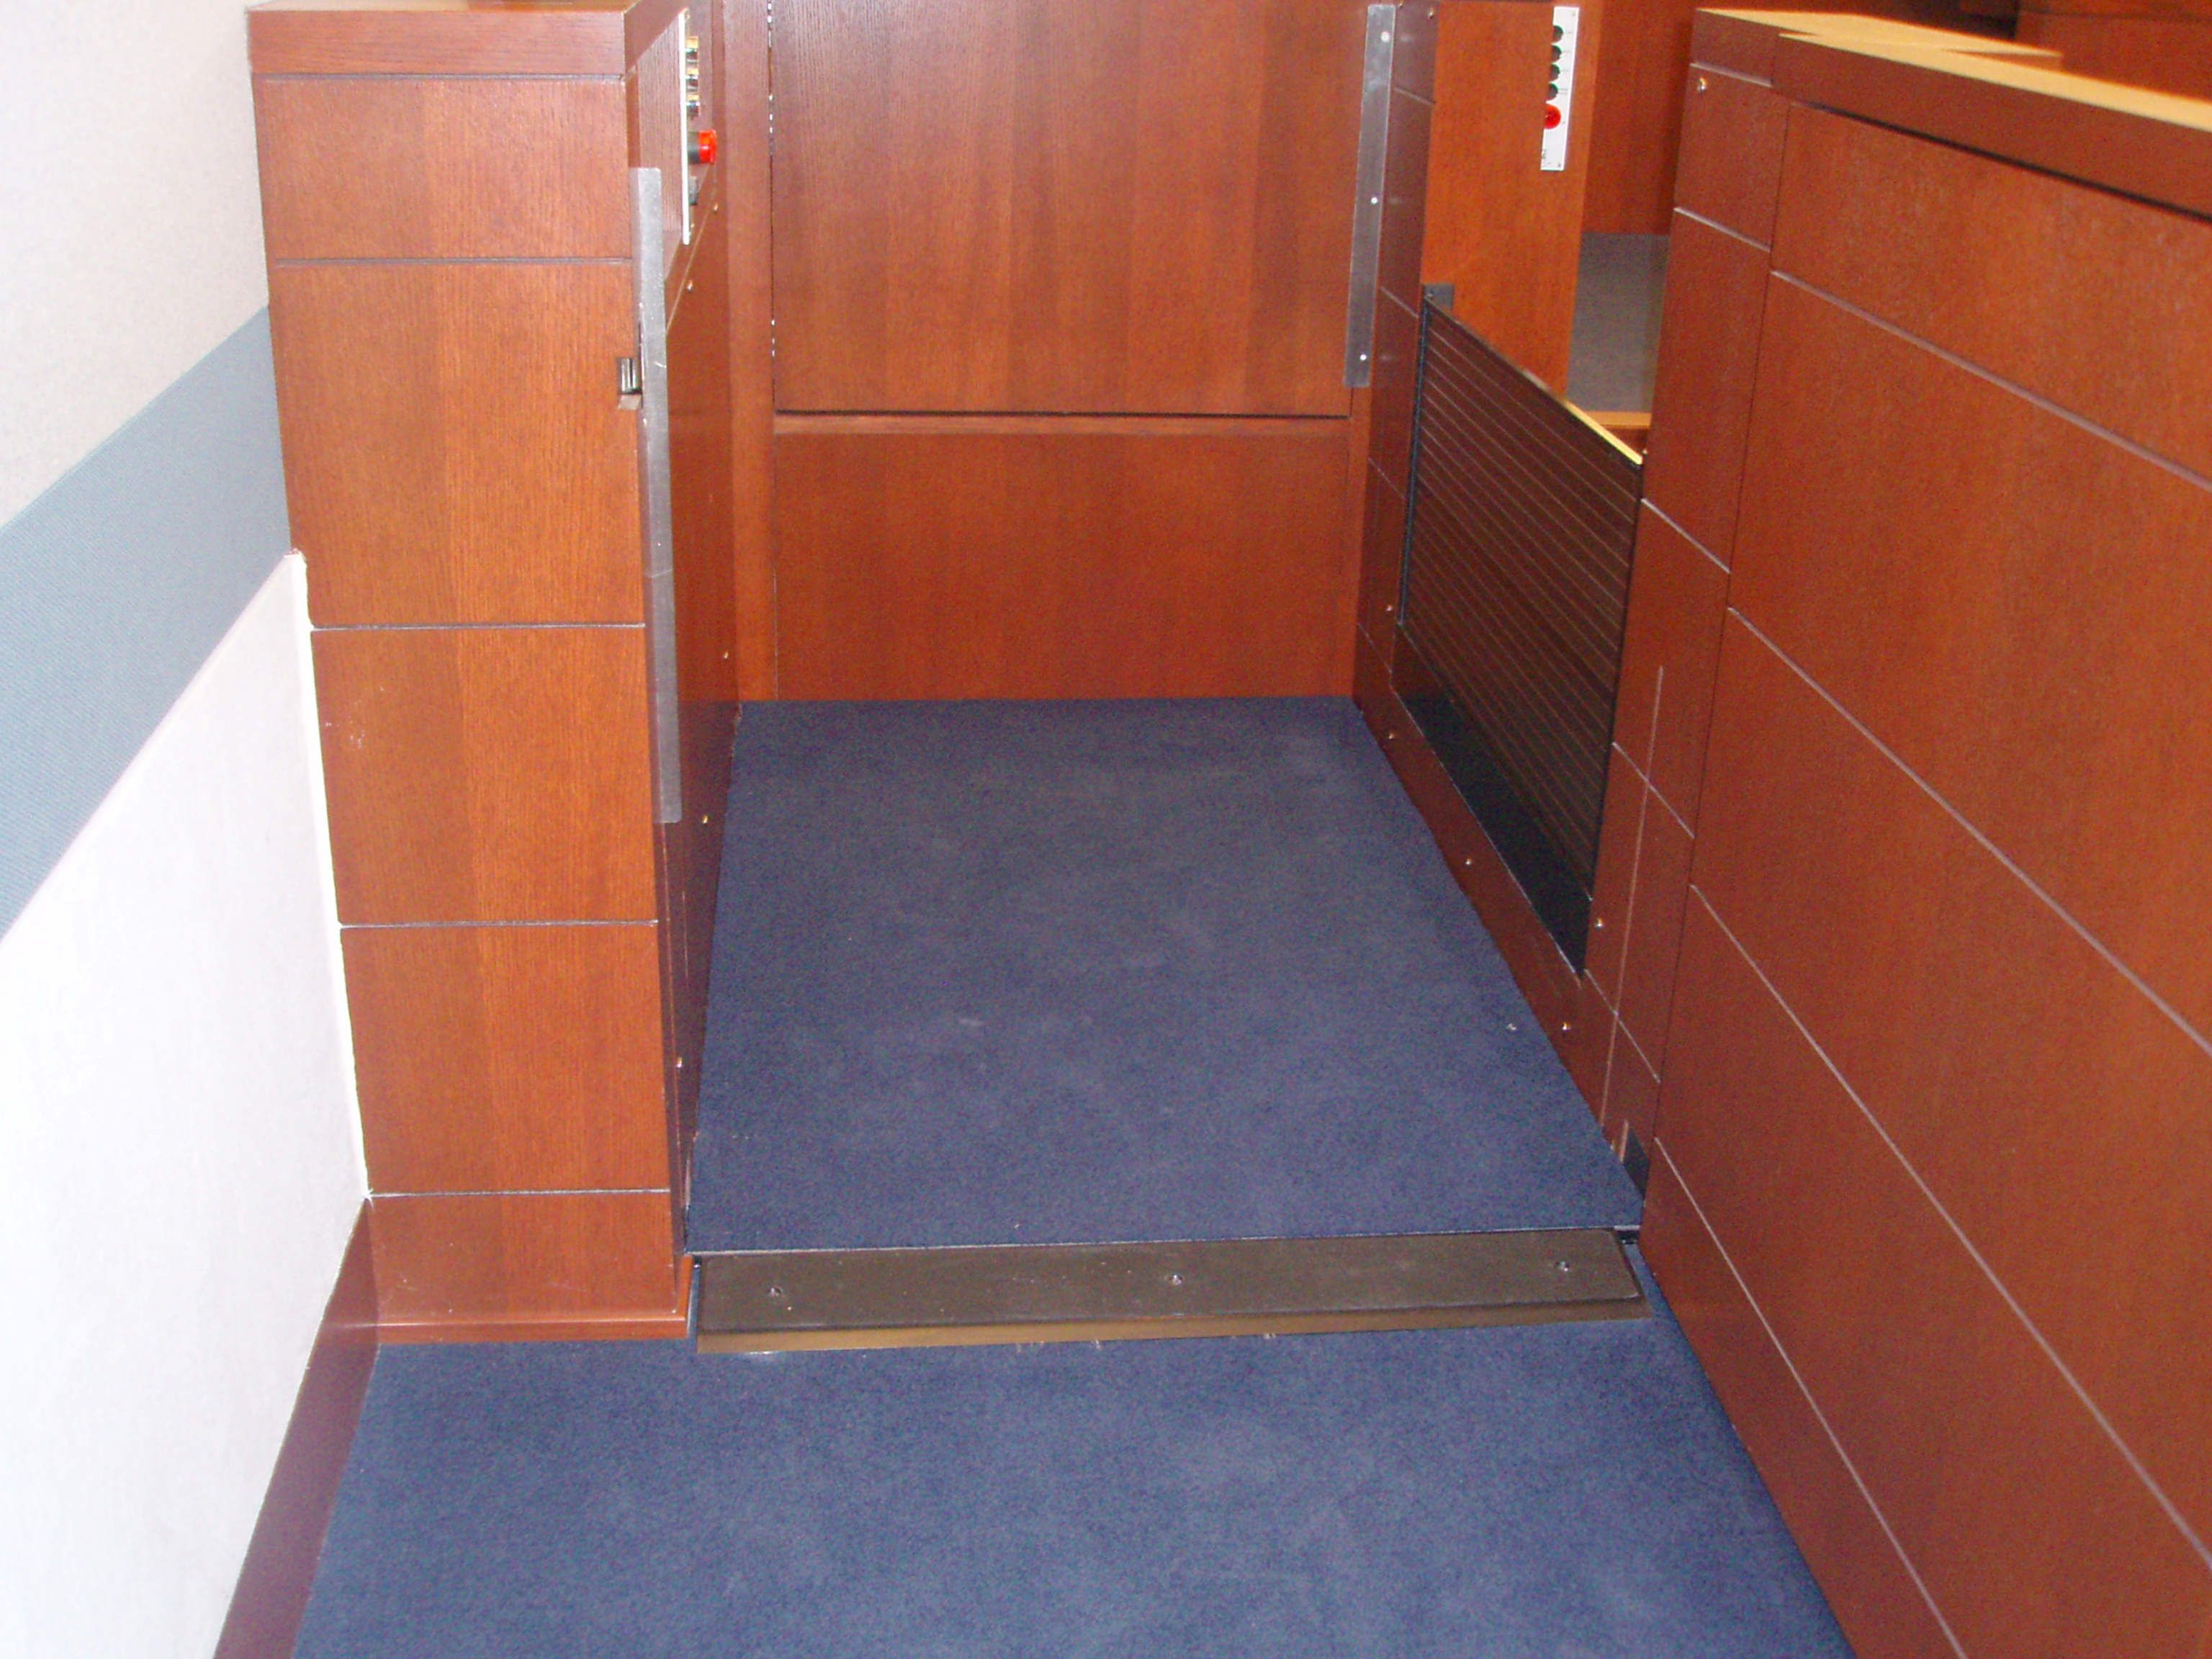 Lift positioned at the lower level. The lower level door is open. Equipped with threshold ramp to allow wheelchair access when the lift is at the lower level. Lift encased in wood millwork blending in with courtroom millwork. Lift is readily available and independently operable.